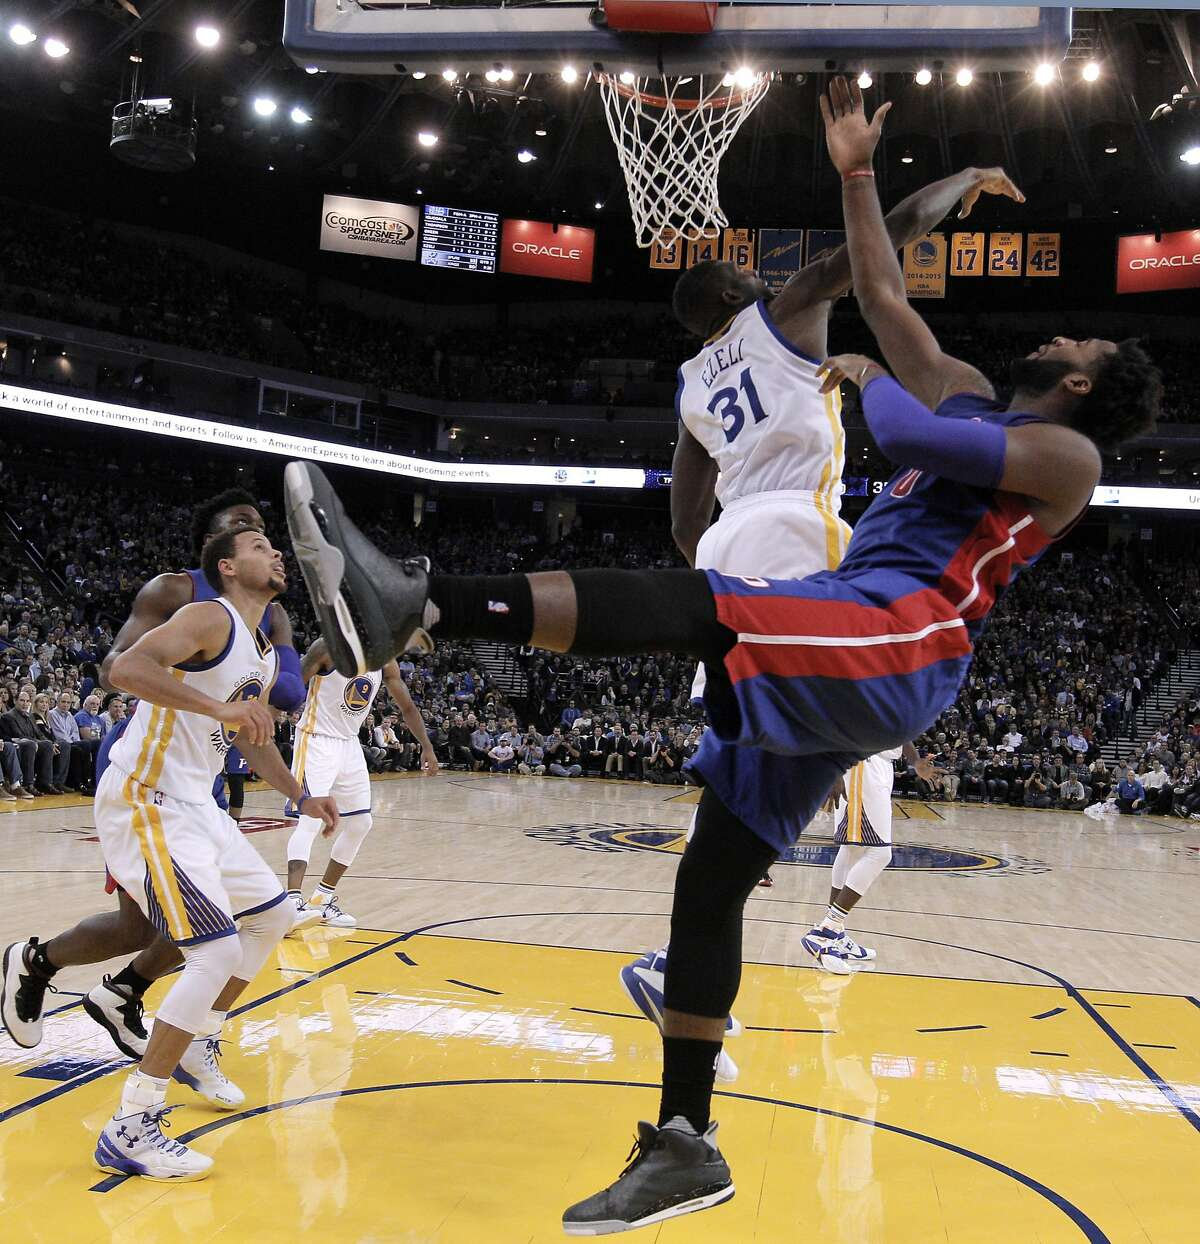 Festus Ezeli (31) defends against a shot by Andre Drummond (0) in the first half as the Golden State Warriors played the Detroit Pistons at Oracle Arena in Oakland, Calif., on Monday, November 9, 2015.